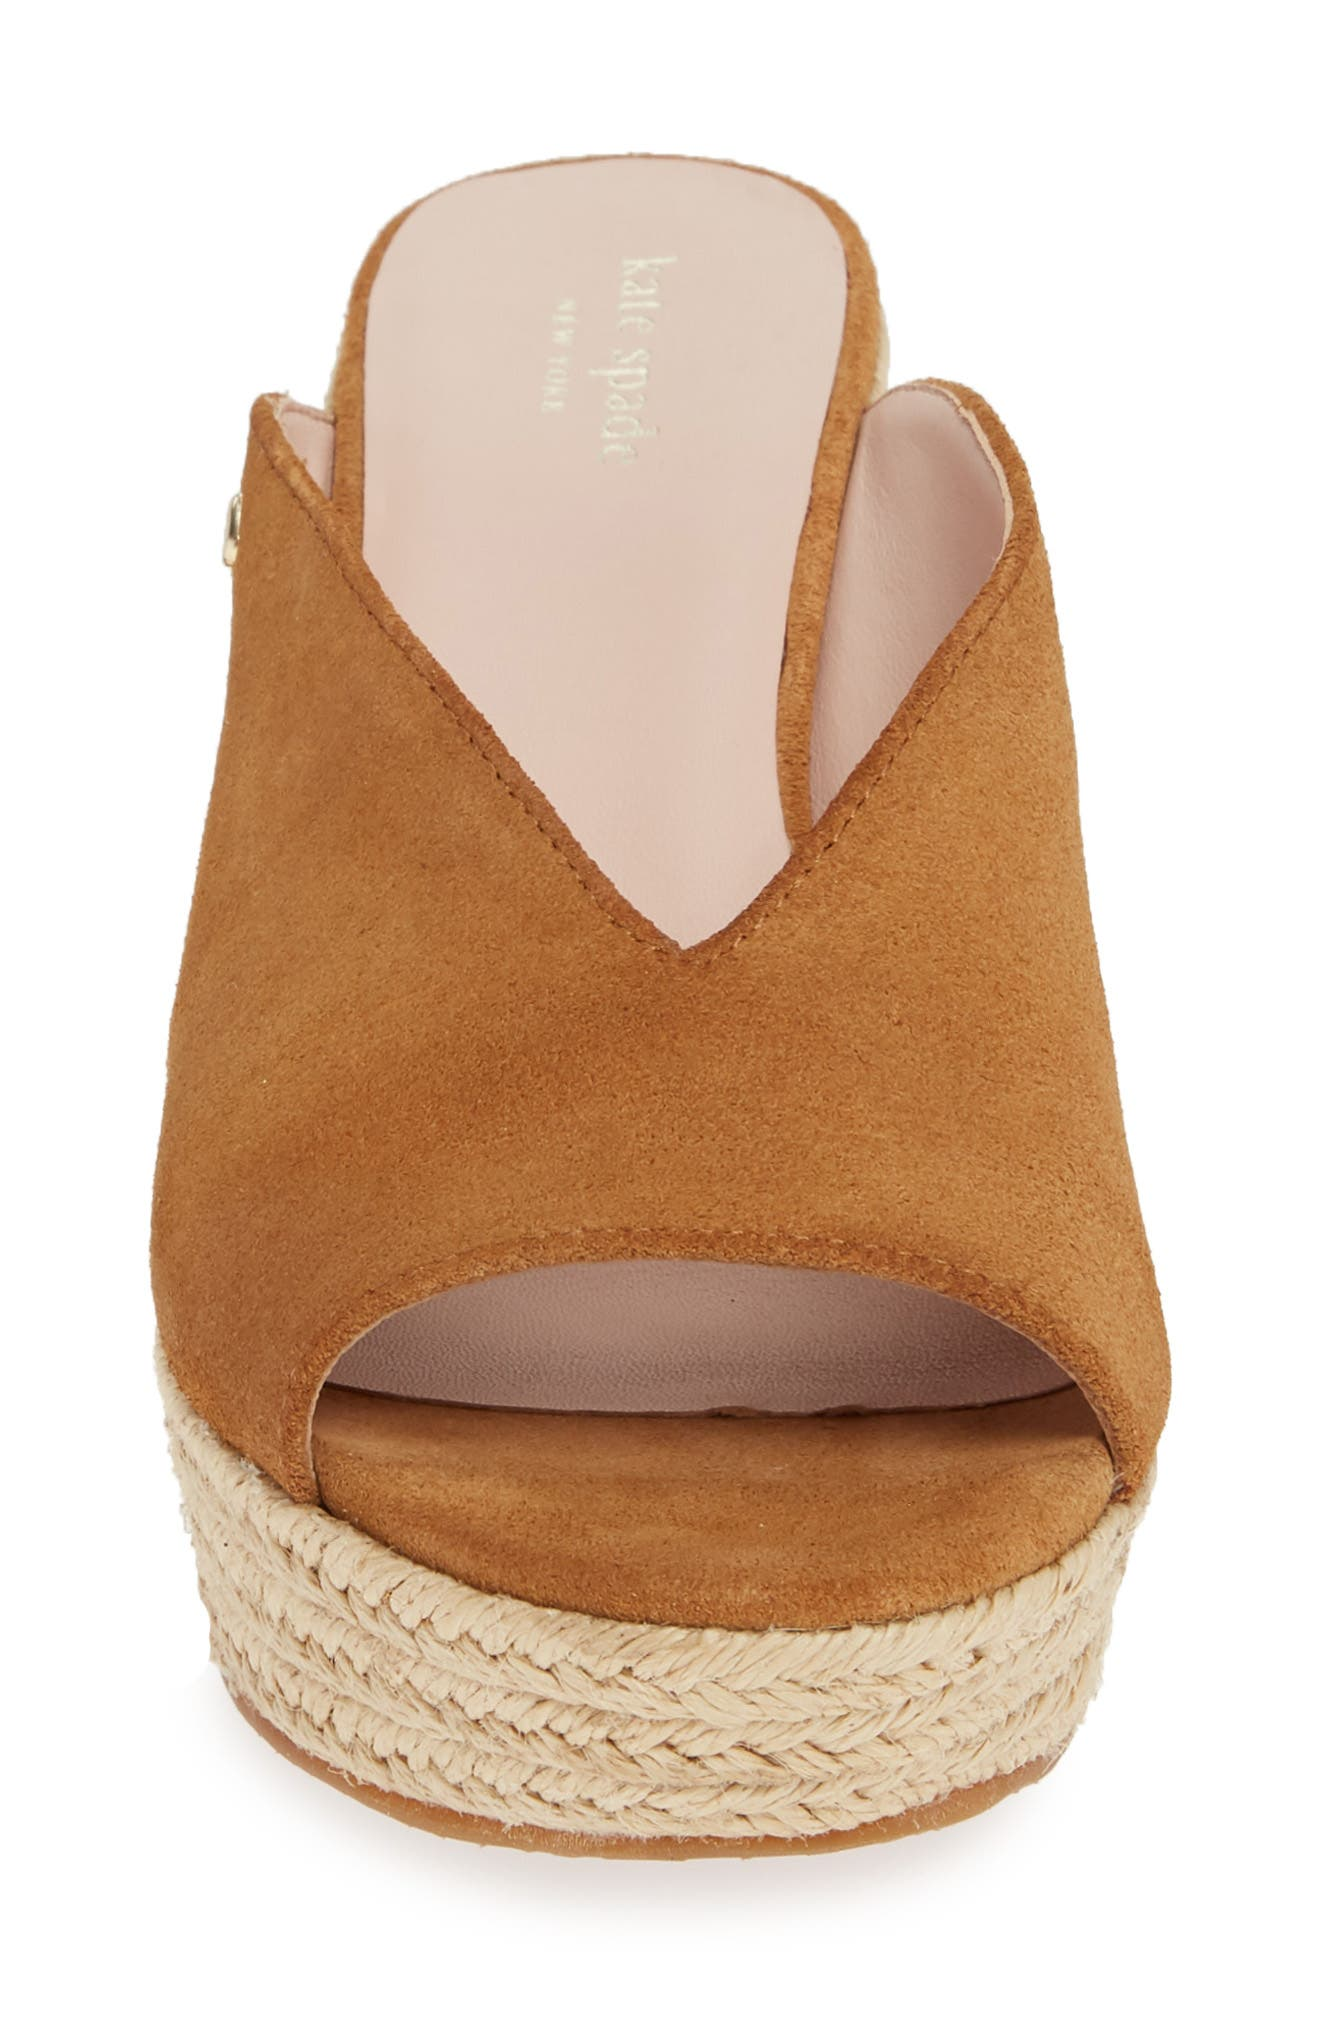 KATE SPADE NEW YORK, thea wedge espadrille mule, Alternate thumbnail 4, color, TOAST